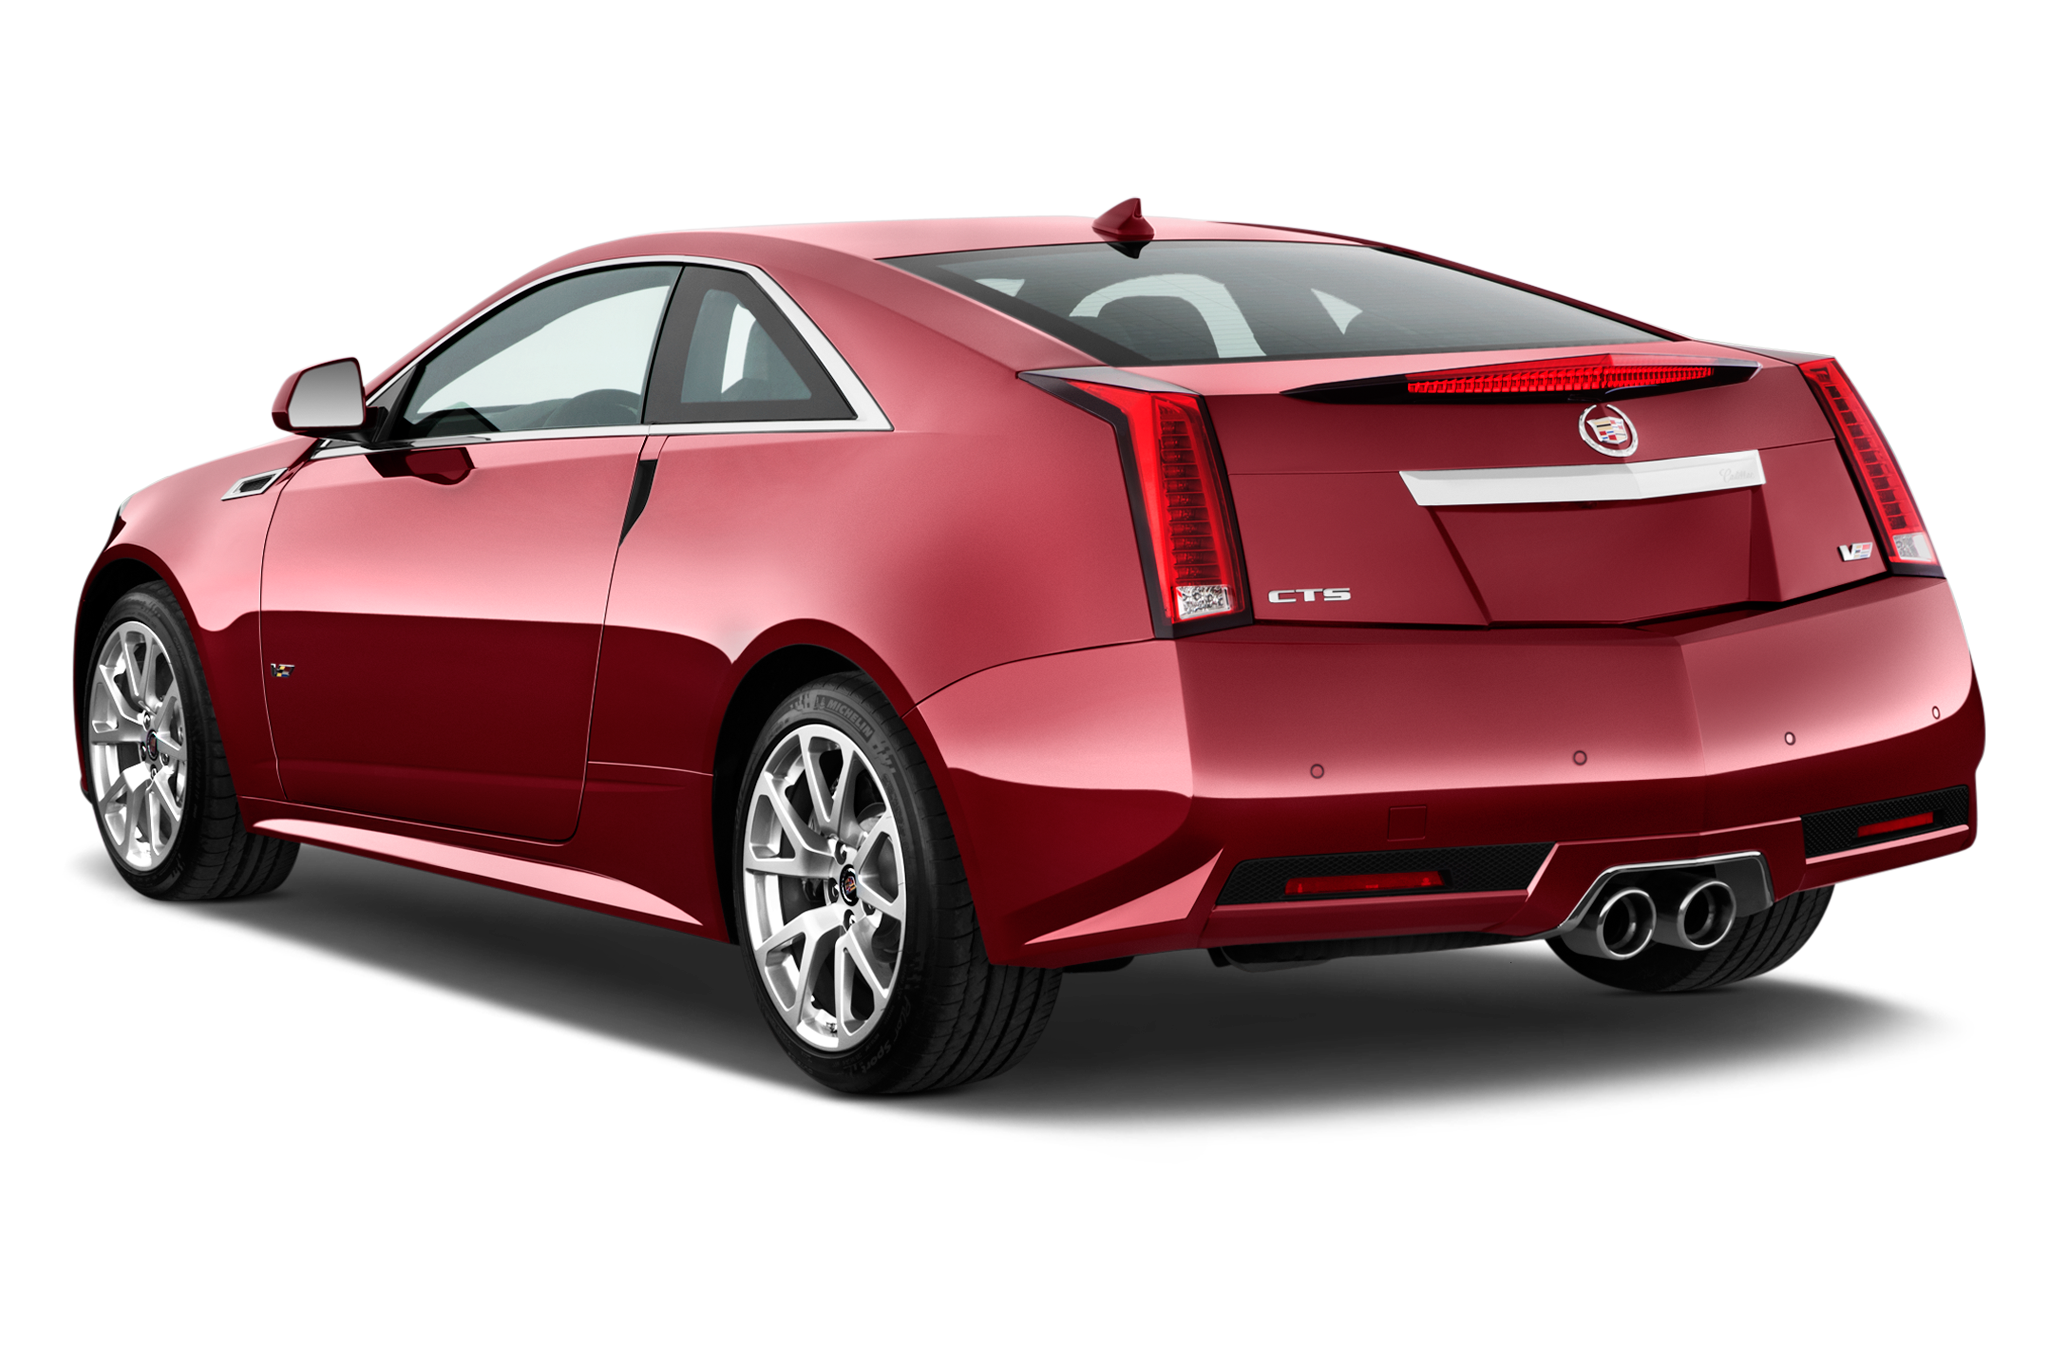 2018 cadillac cts v review coupe sedan price msrp. Black Bedroom Furniture Sets. Home Design Ideas